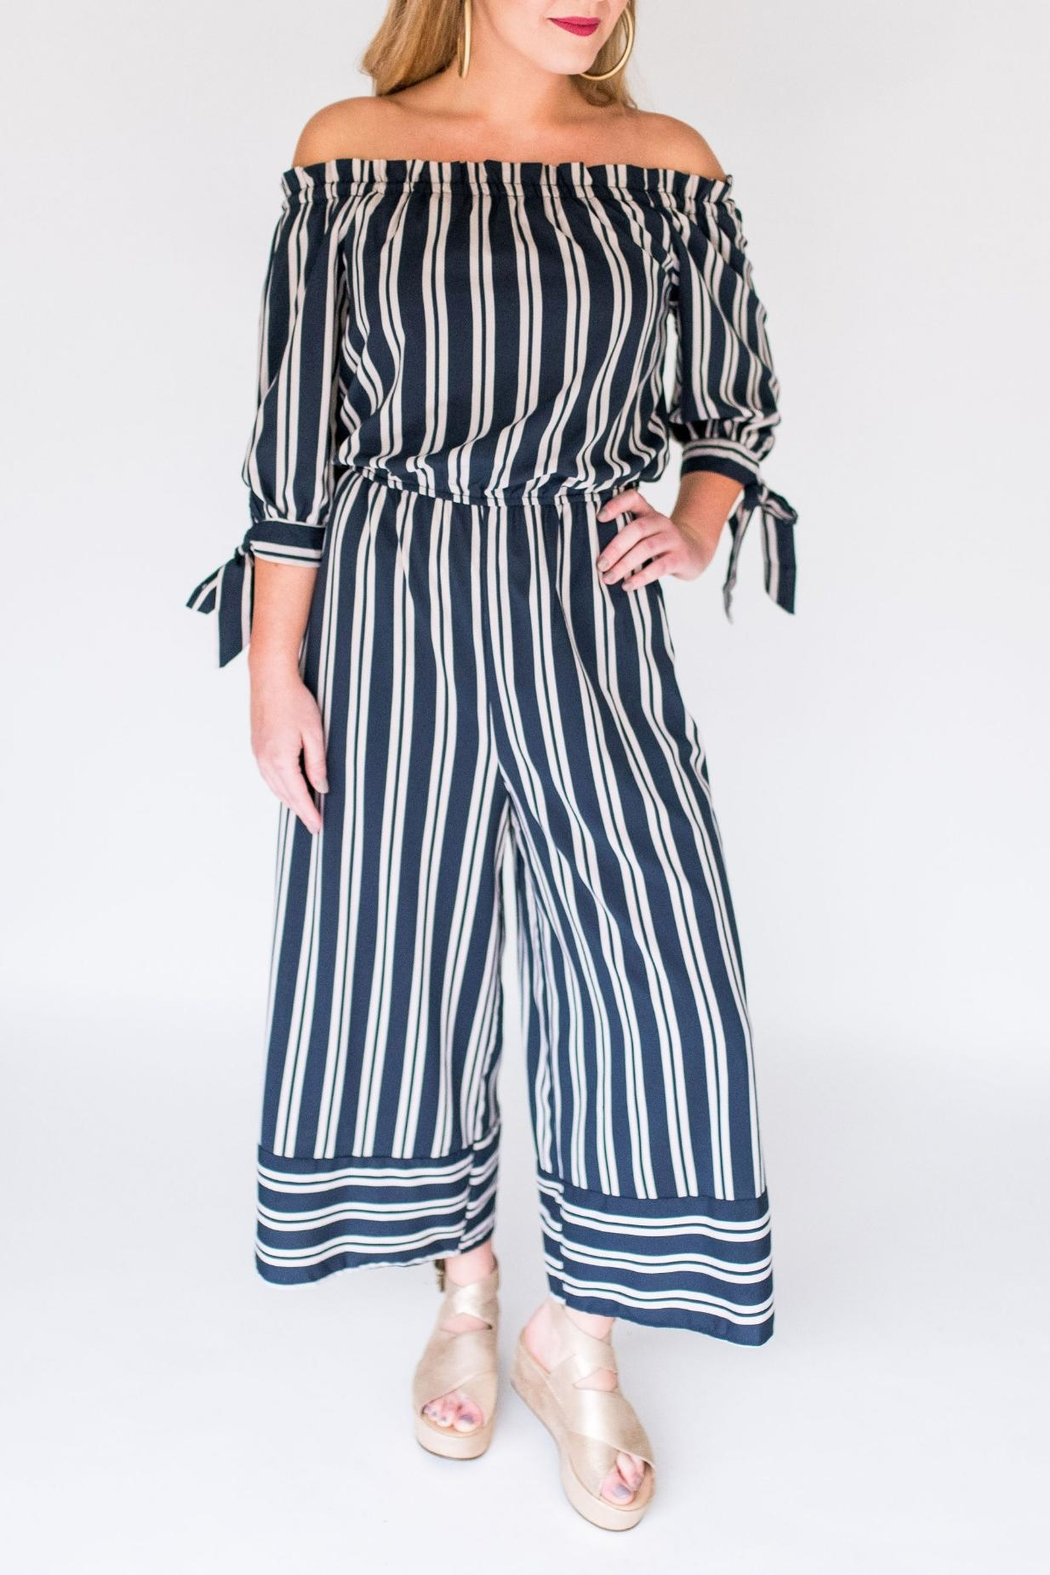 02a17e2e234c6 She + Sky Stripe Culotte Jumpsuit from New York City by Suite275 ...